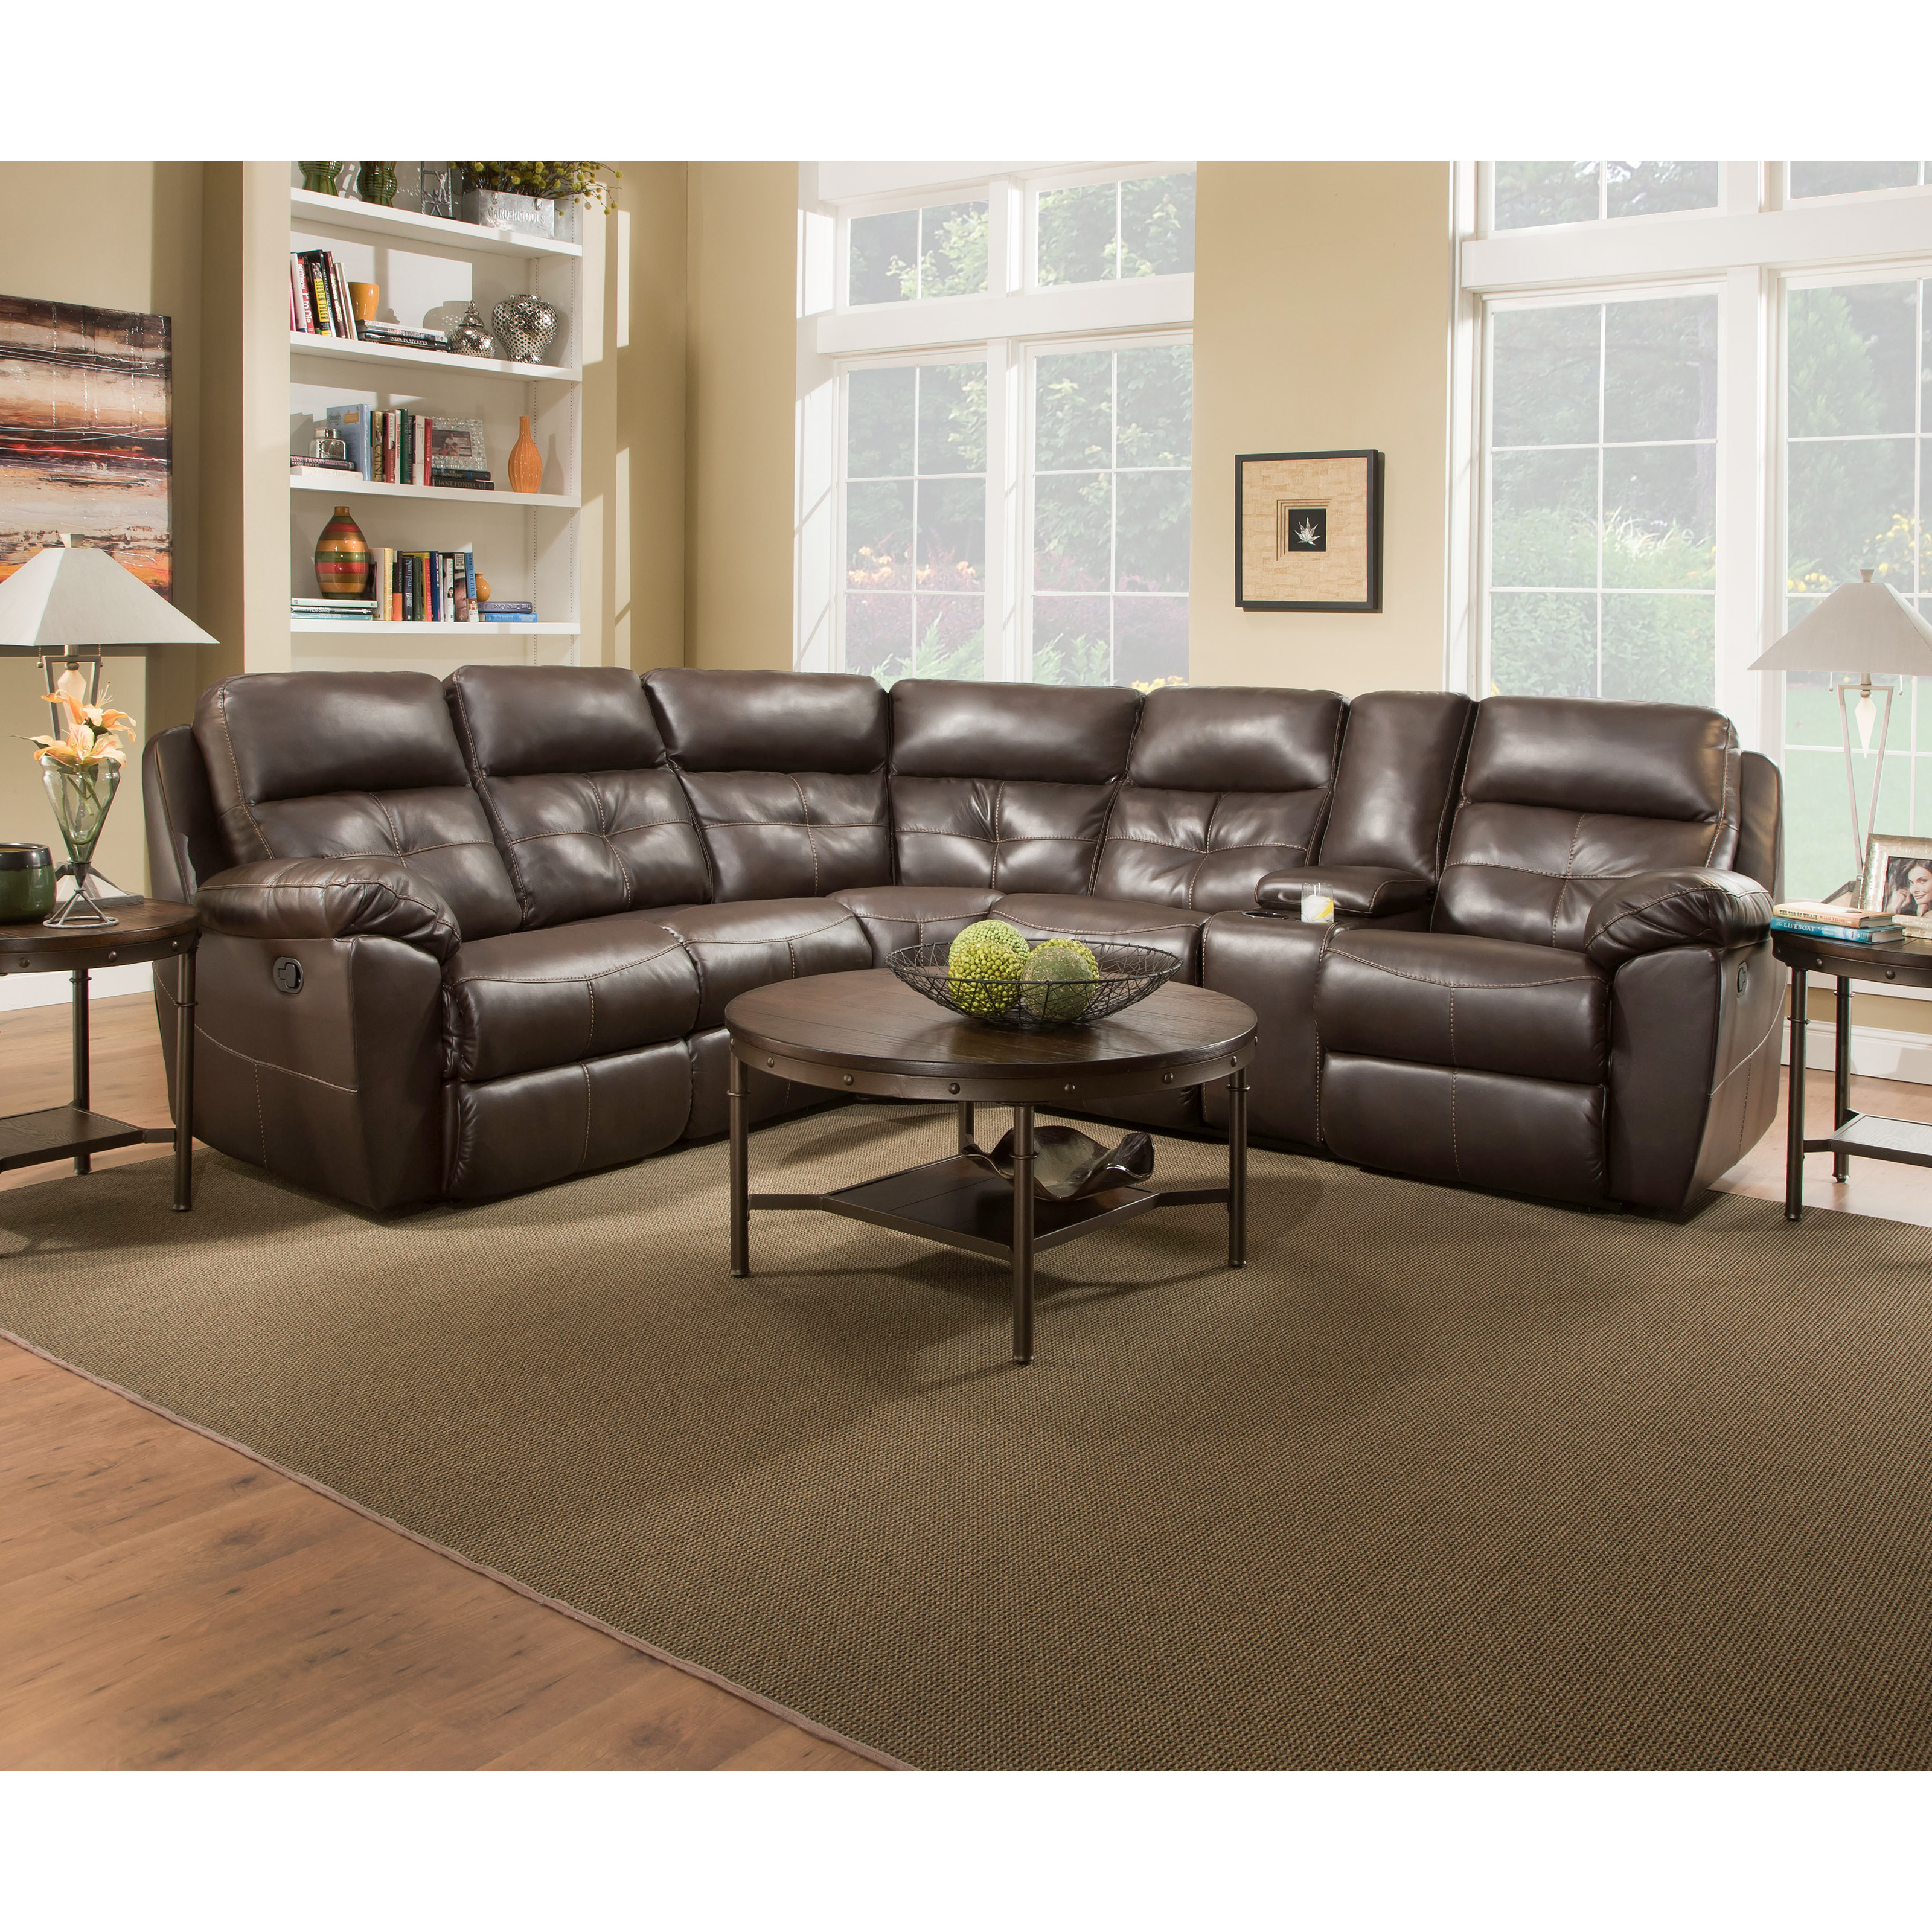 soft l sectional hughes comes sofas best in pinterest leather shaped new serta or on upholstery furniture bonded jazziraes black images brown upholstered